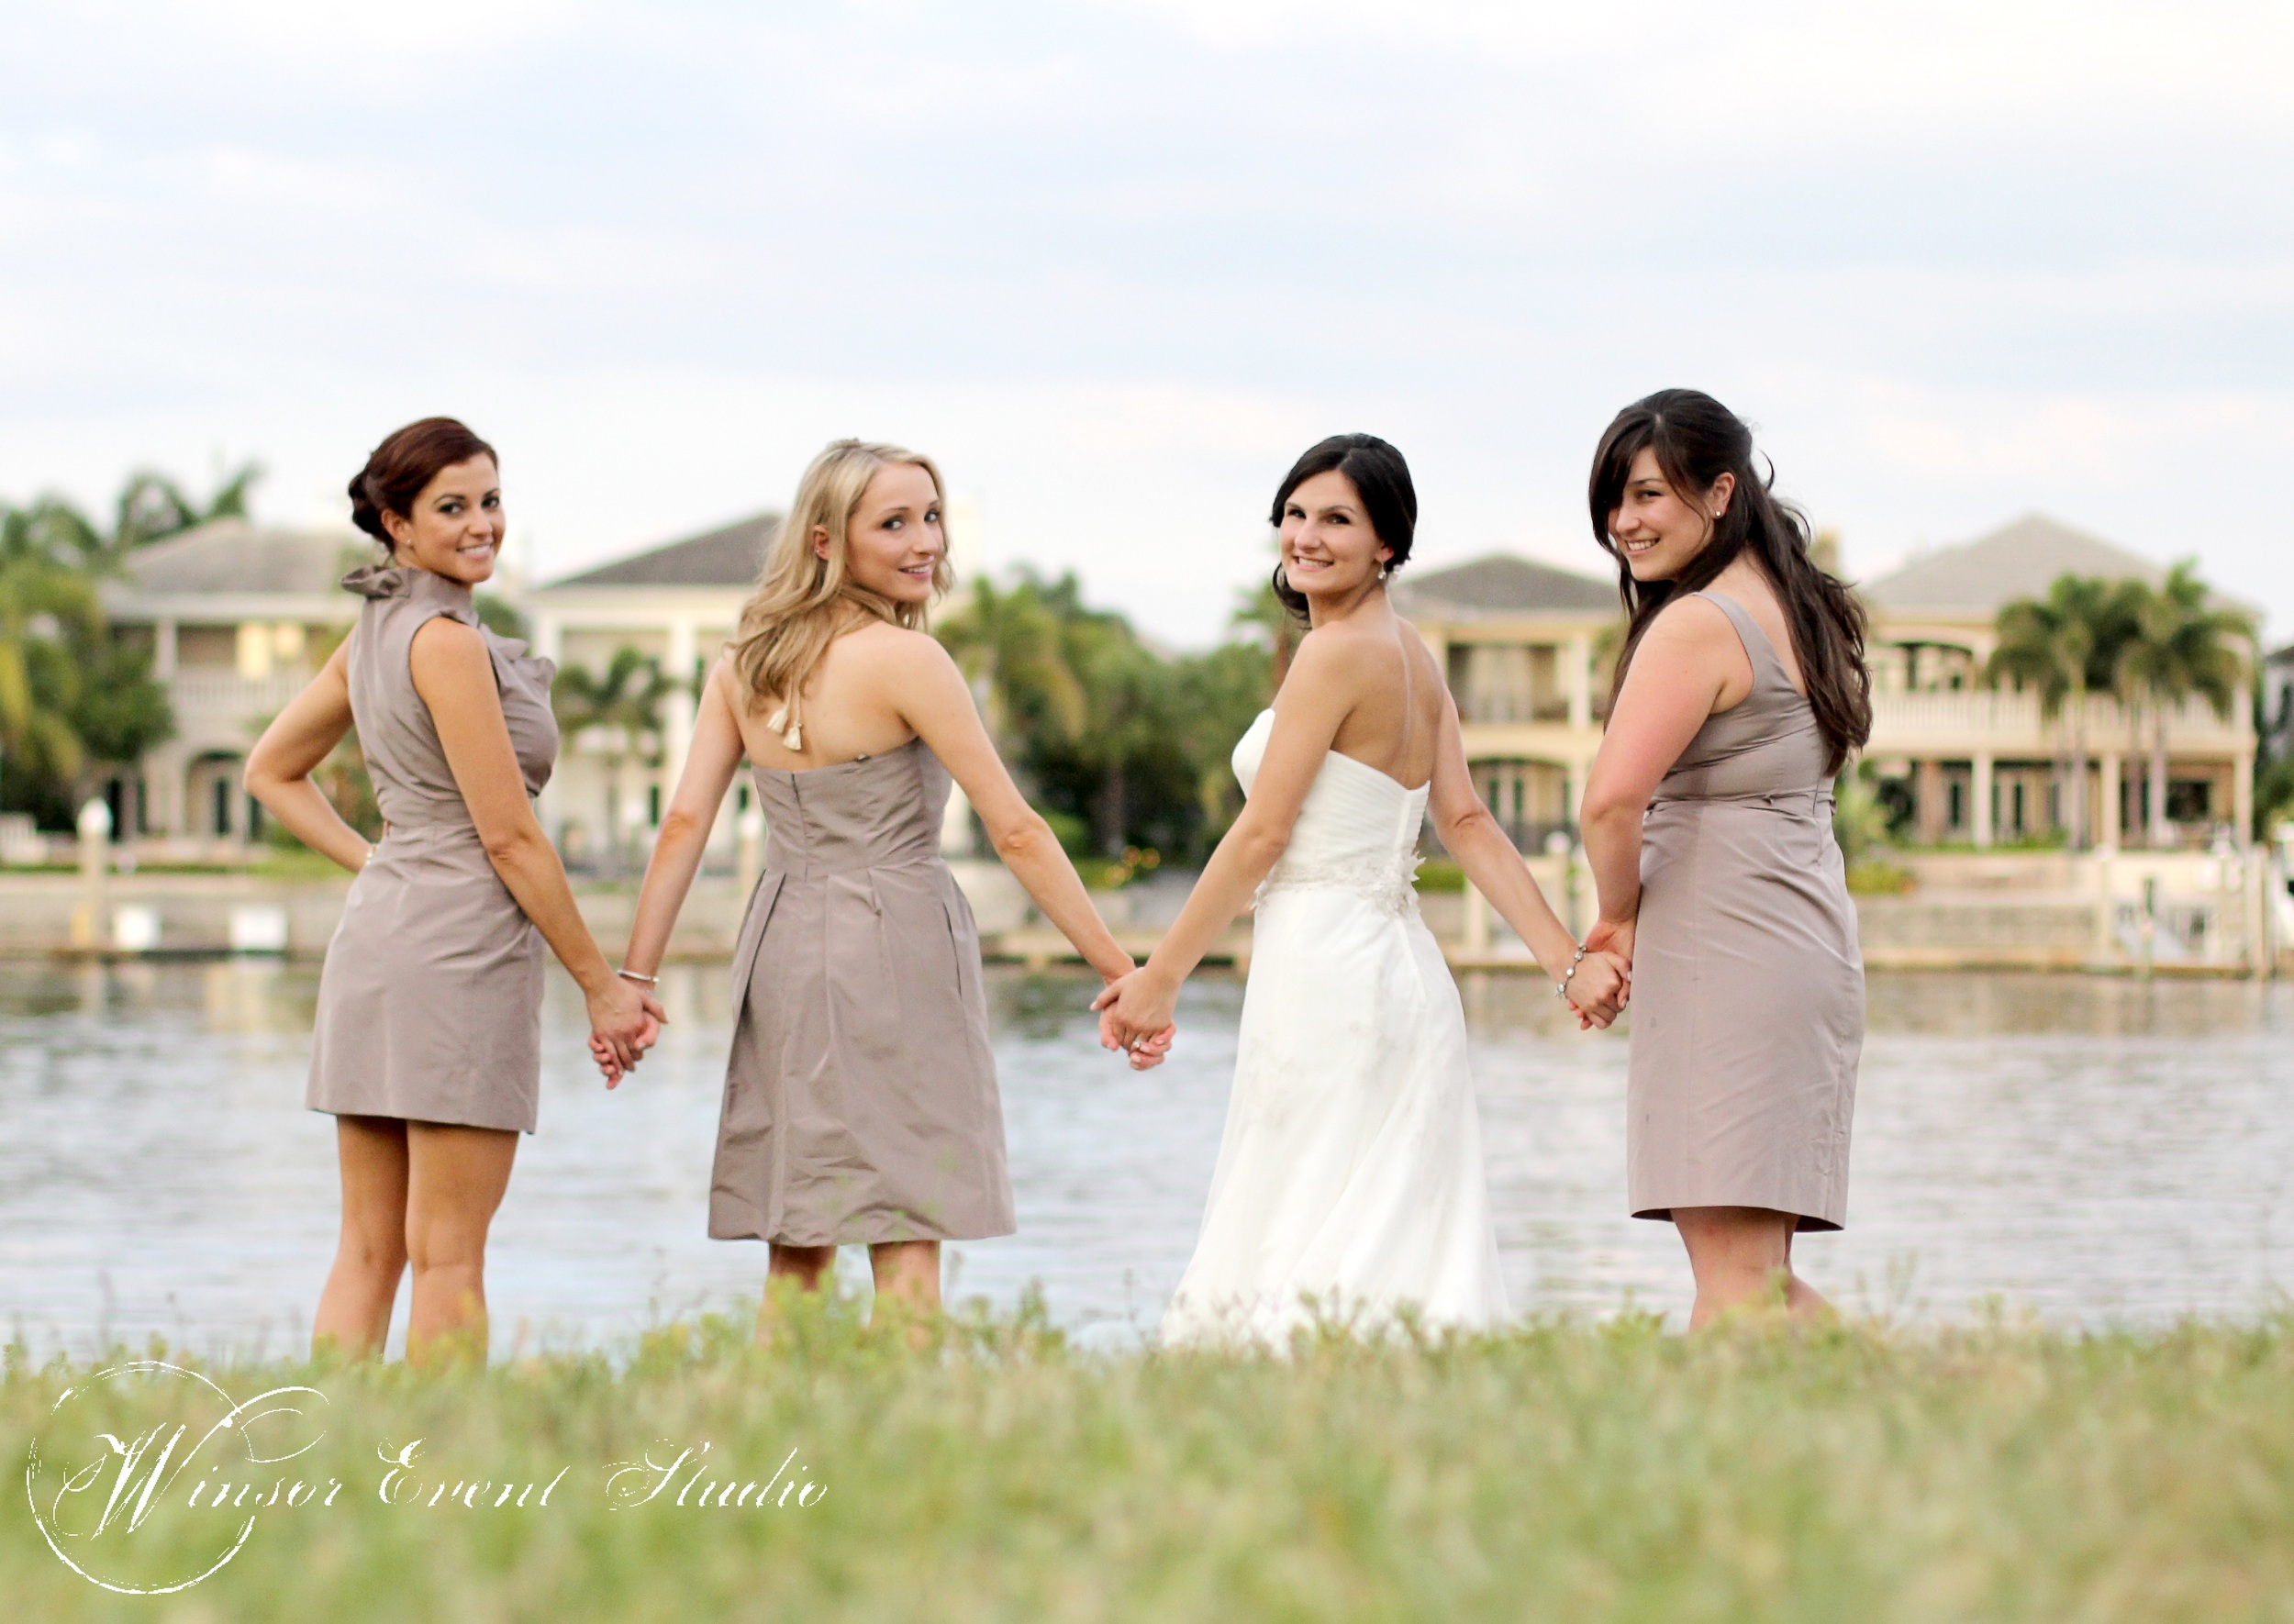 Bridesmaids wore mismatched cocktail dresses from J Crew in a soft shade of taupe